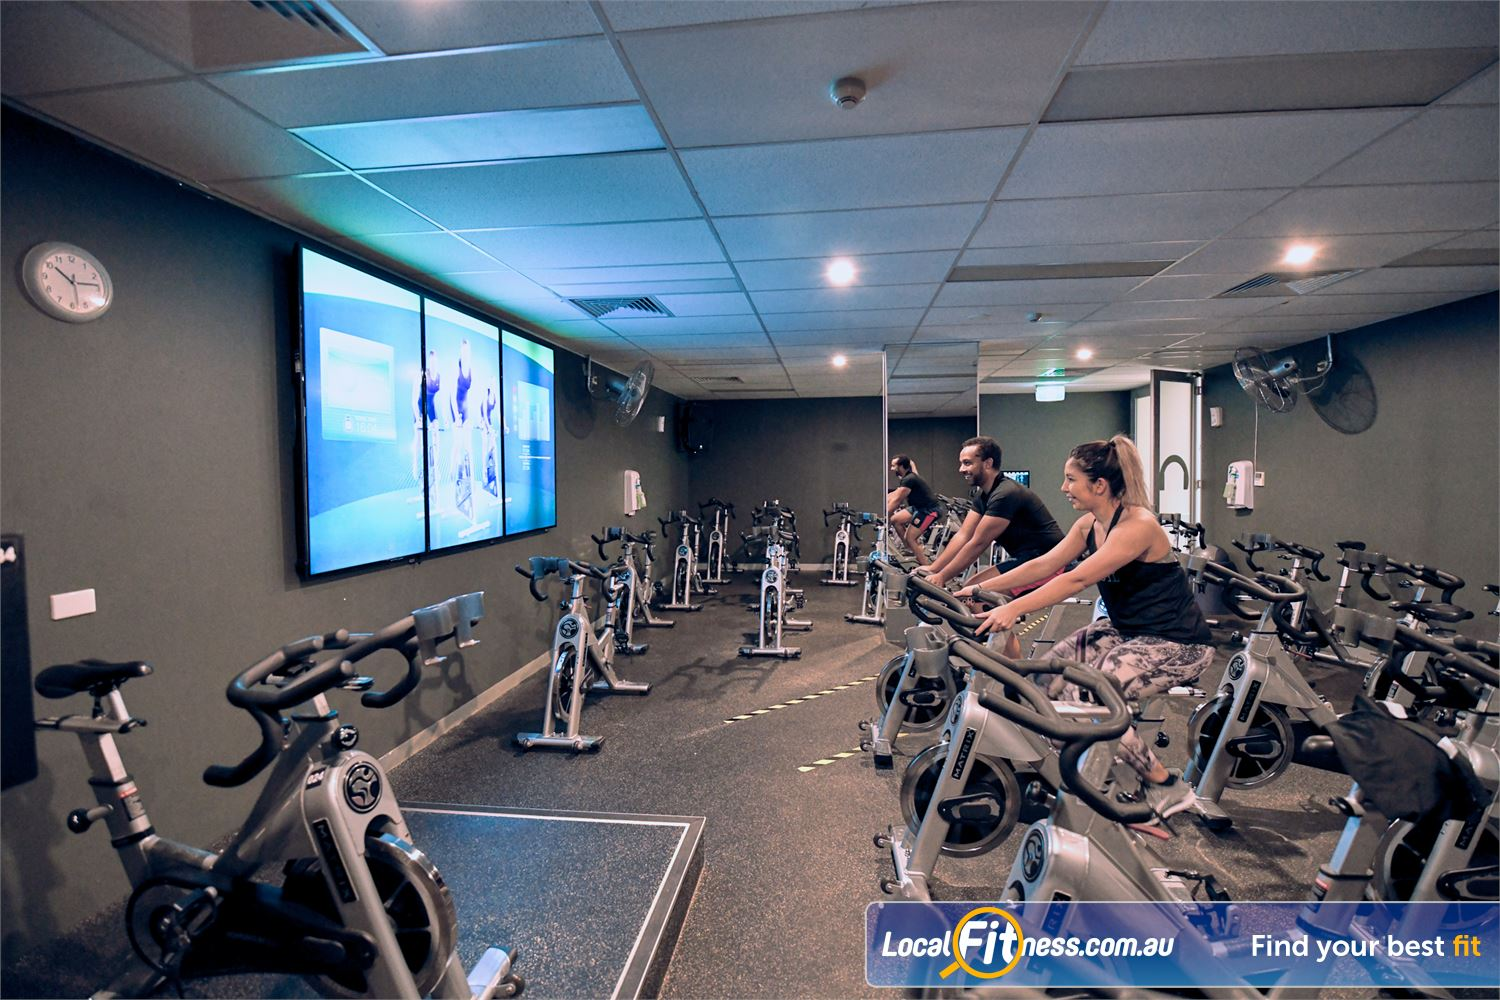 Goodlife Health Clubs Near Brooklyn Our dedicated Port Melbourne spin cycle room with virtual class screen.